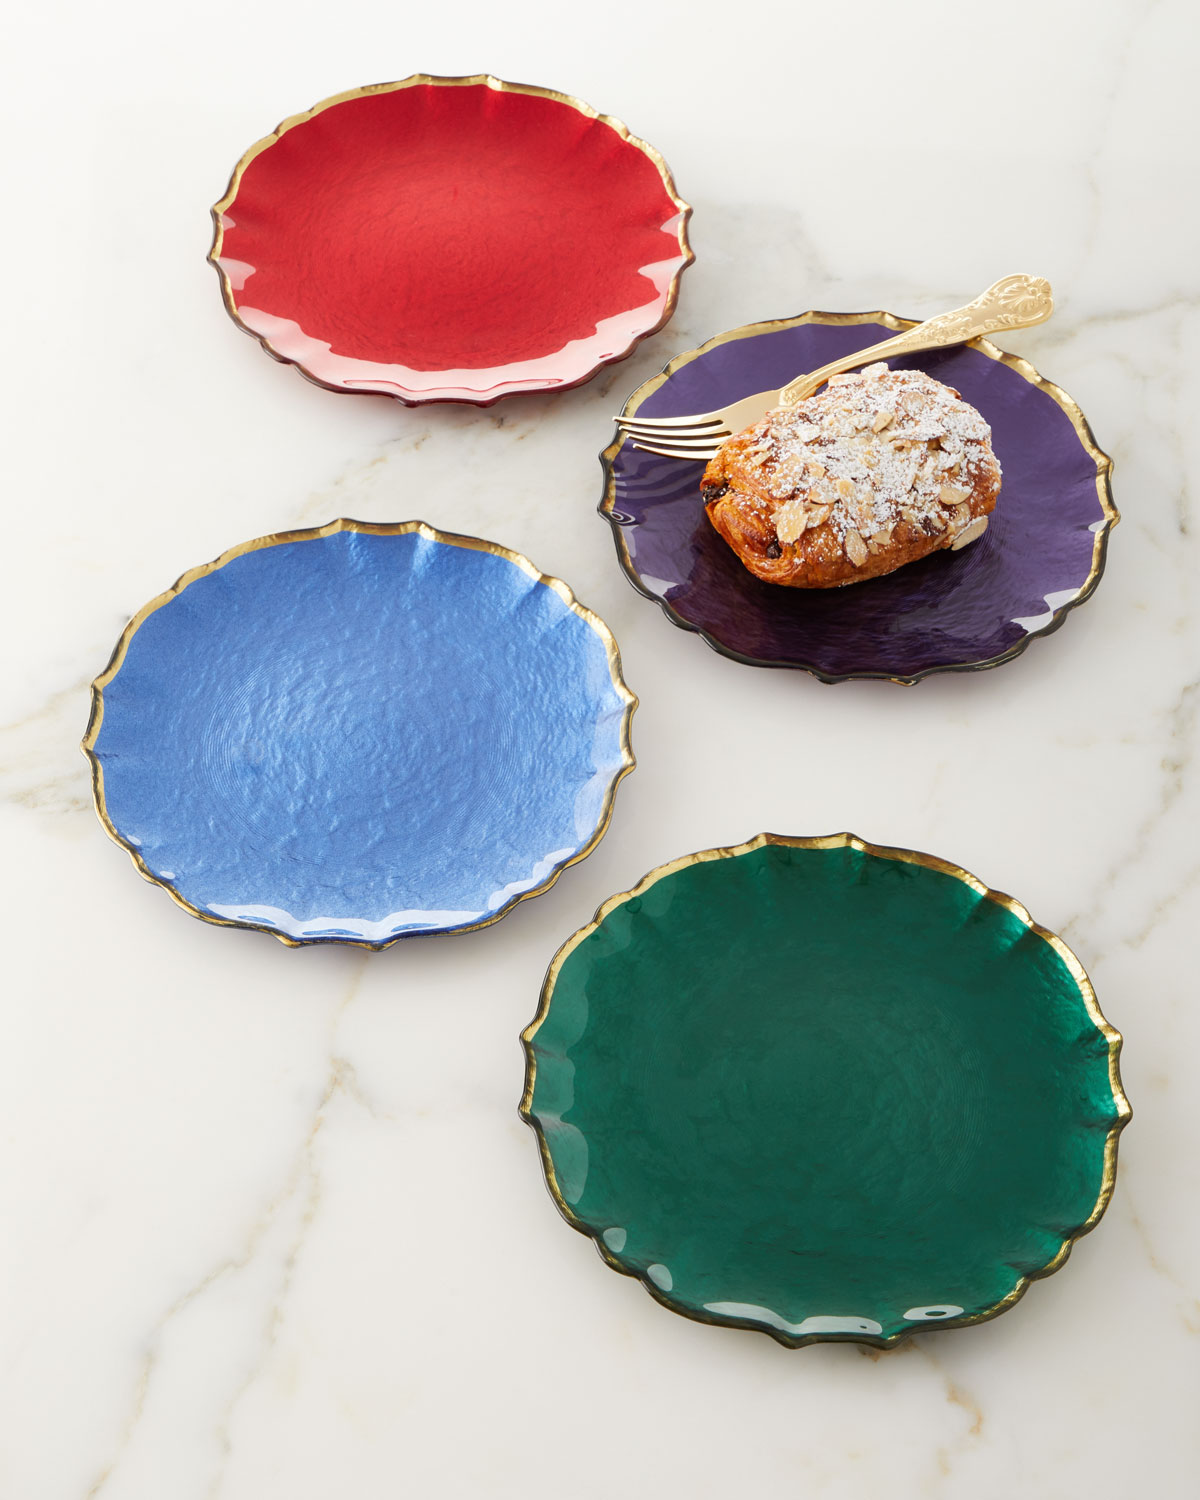 Assorted Jewel-Tone Glass Salad Plates, Set of 4